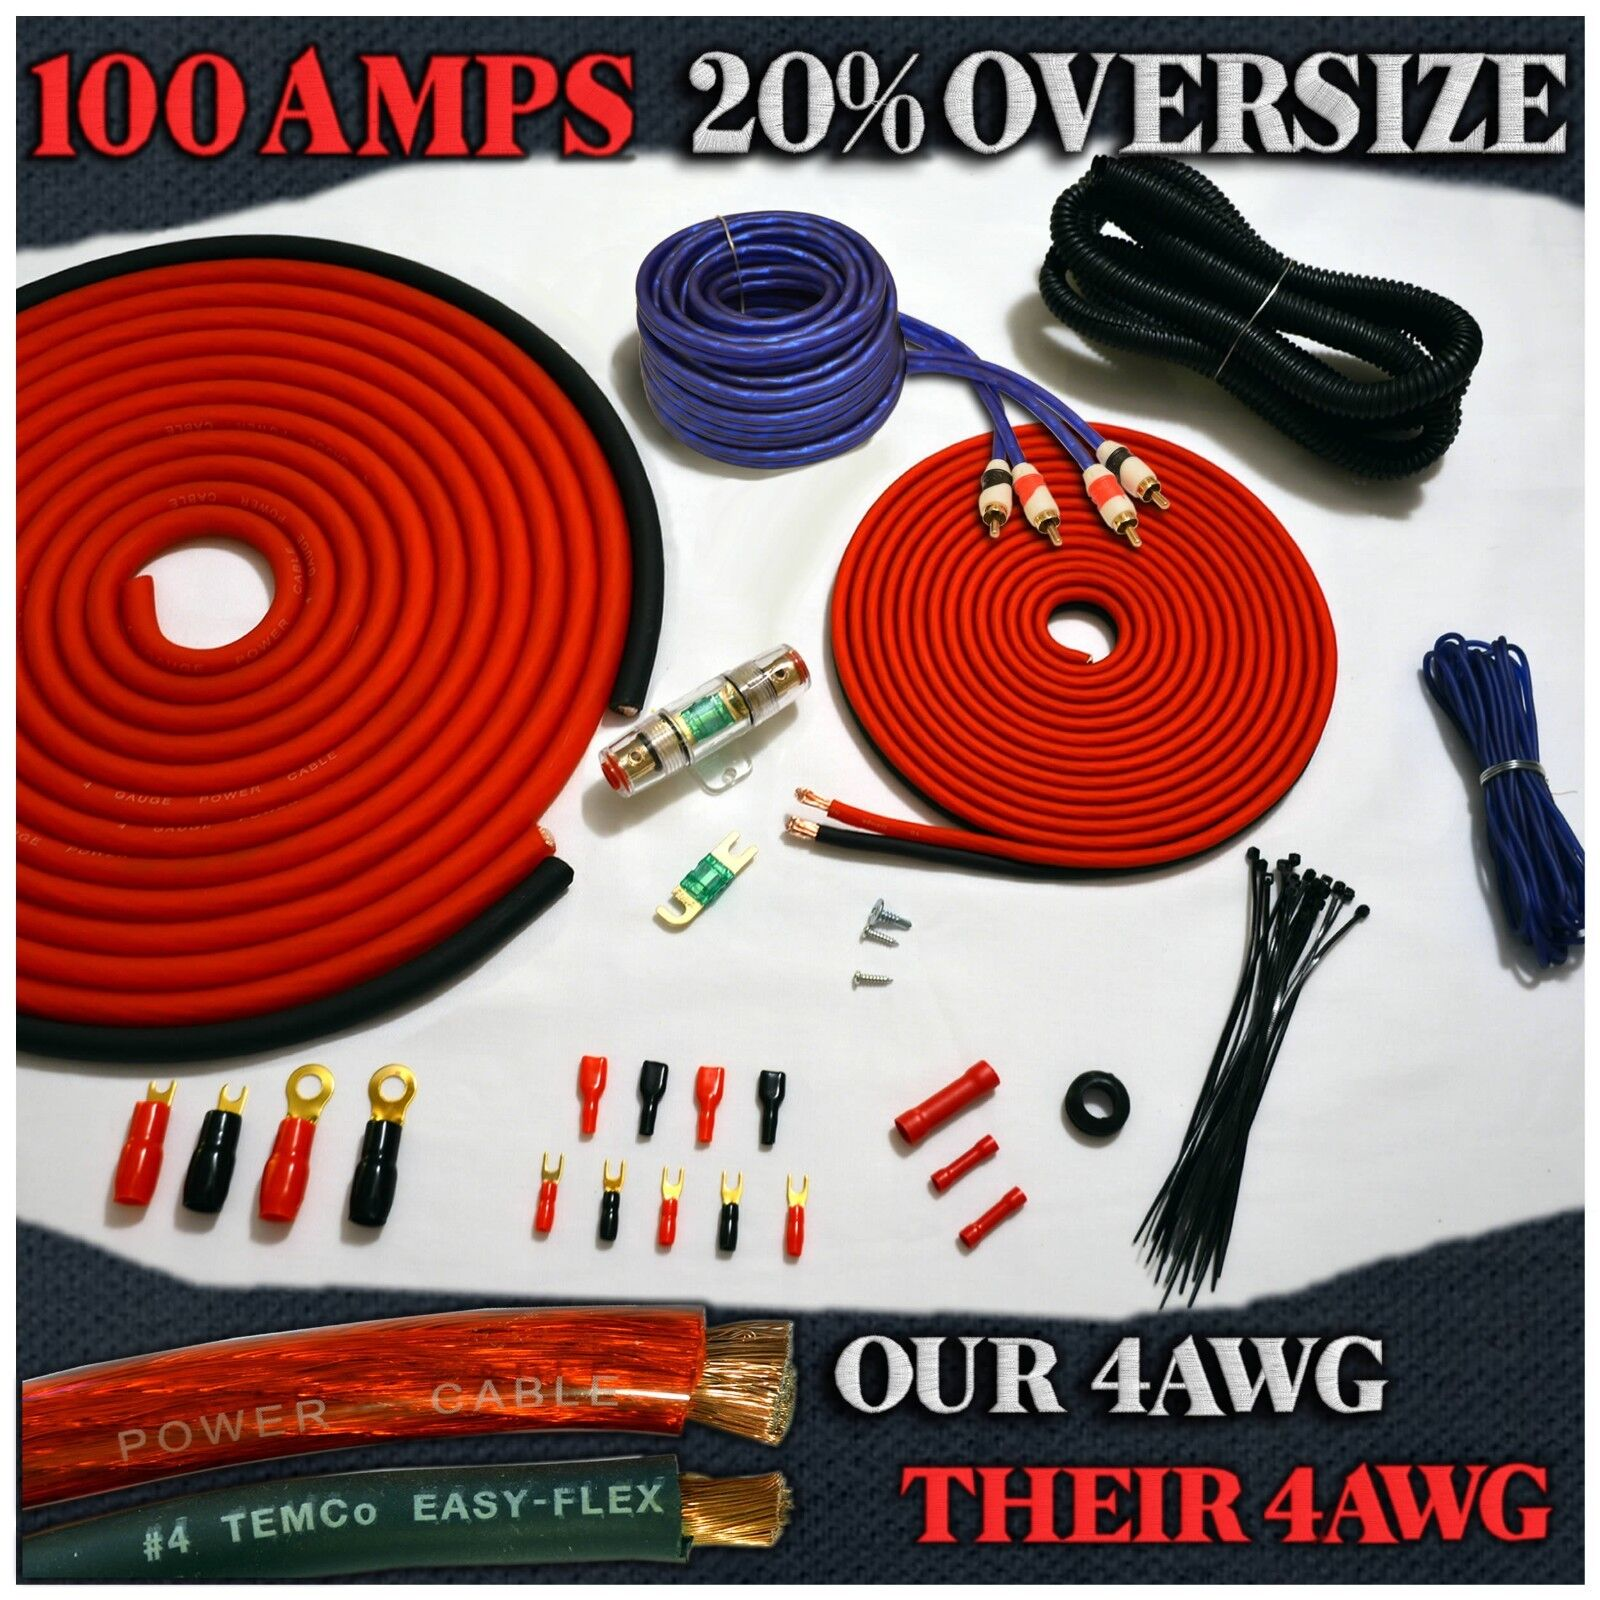 4 Gauge Amp Kit Complete Power Cable and Wiring for Car Amplifier ...